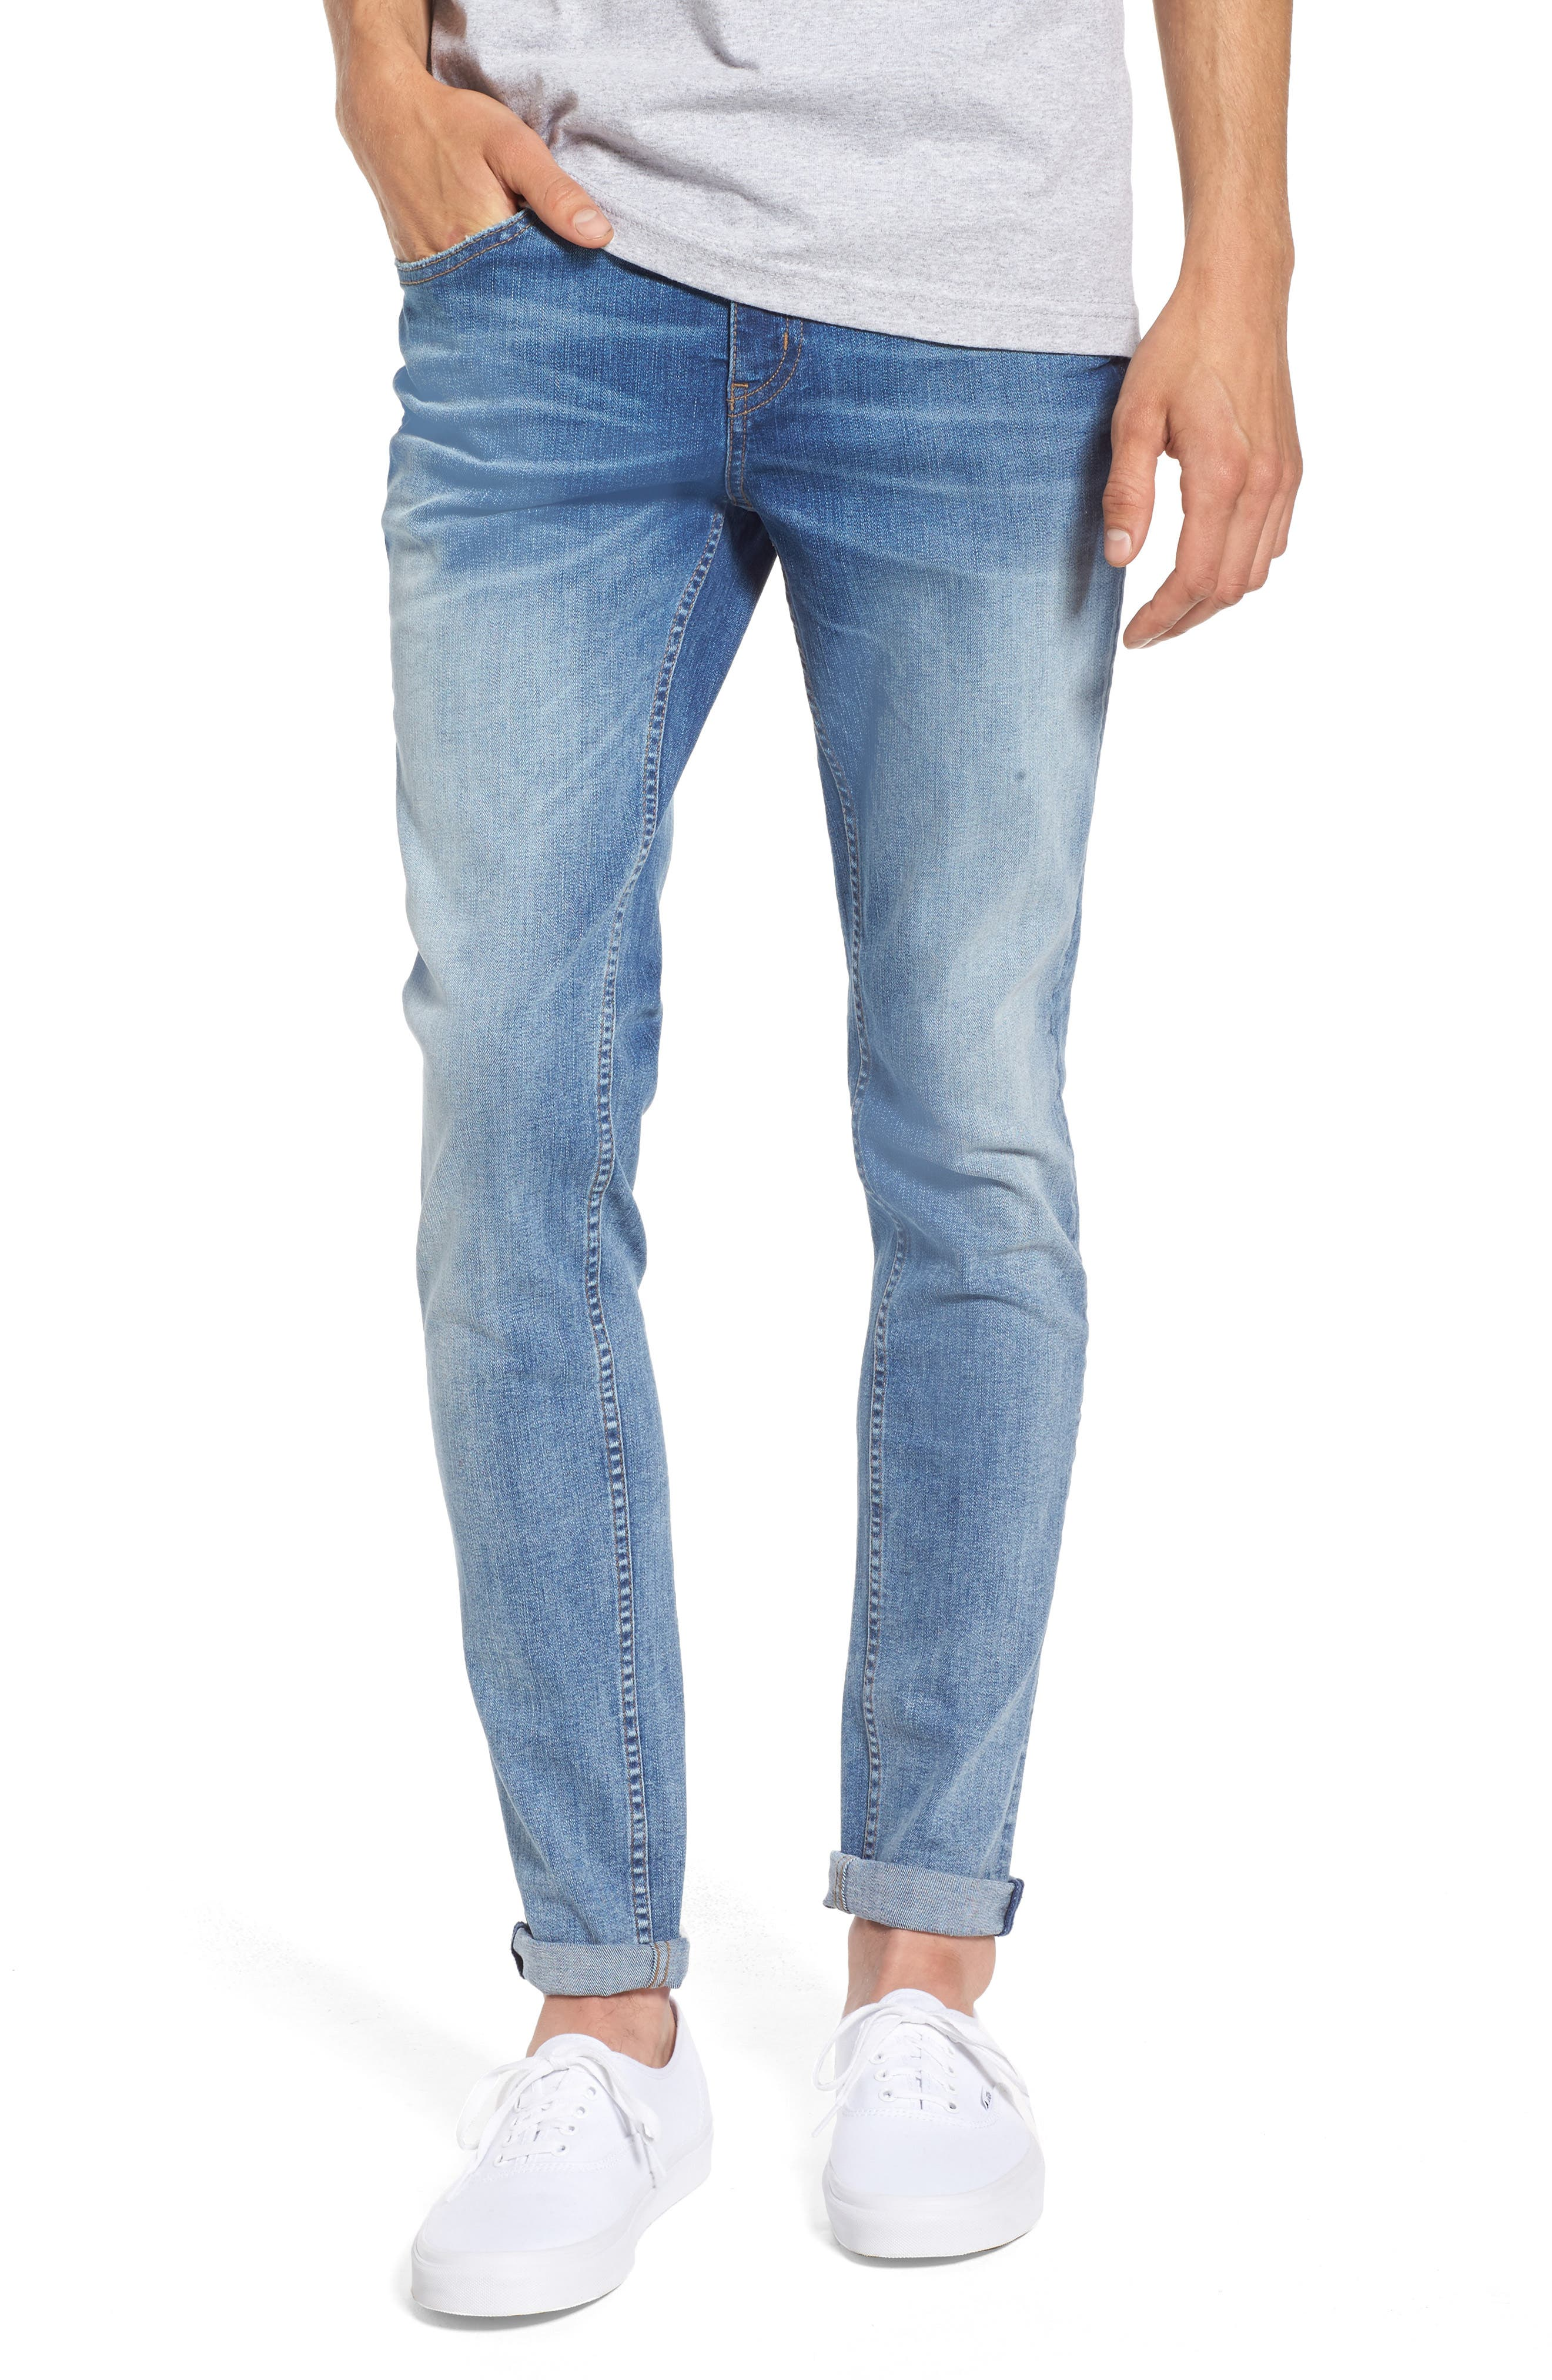 Tight Skinny Fit Jeans,                         Main,                         color, Dug Up Blue